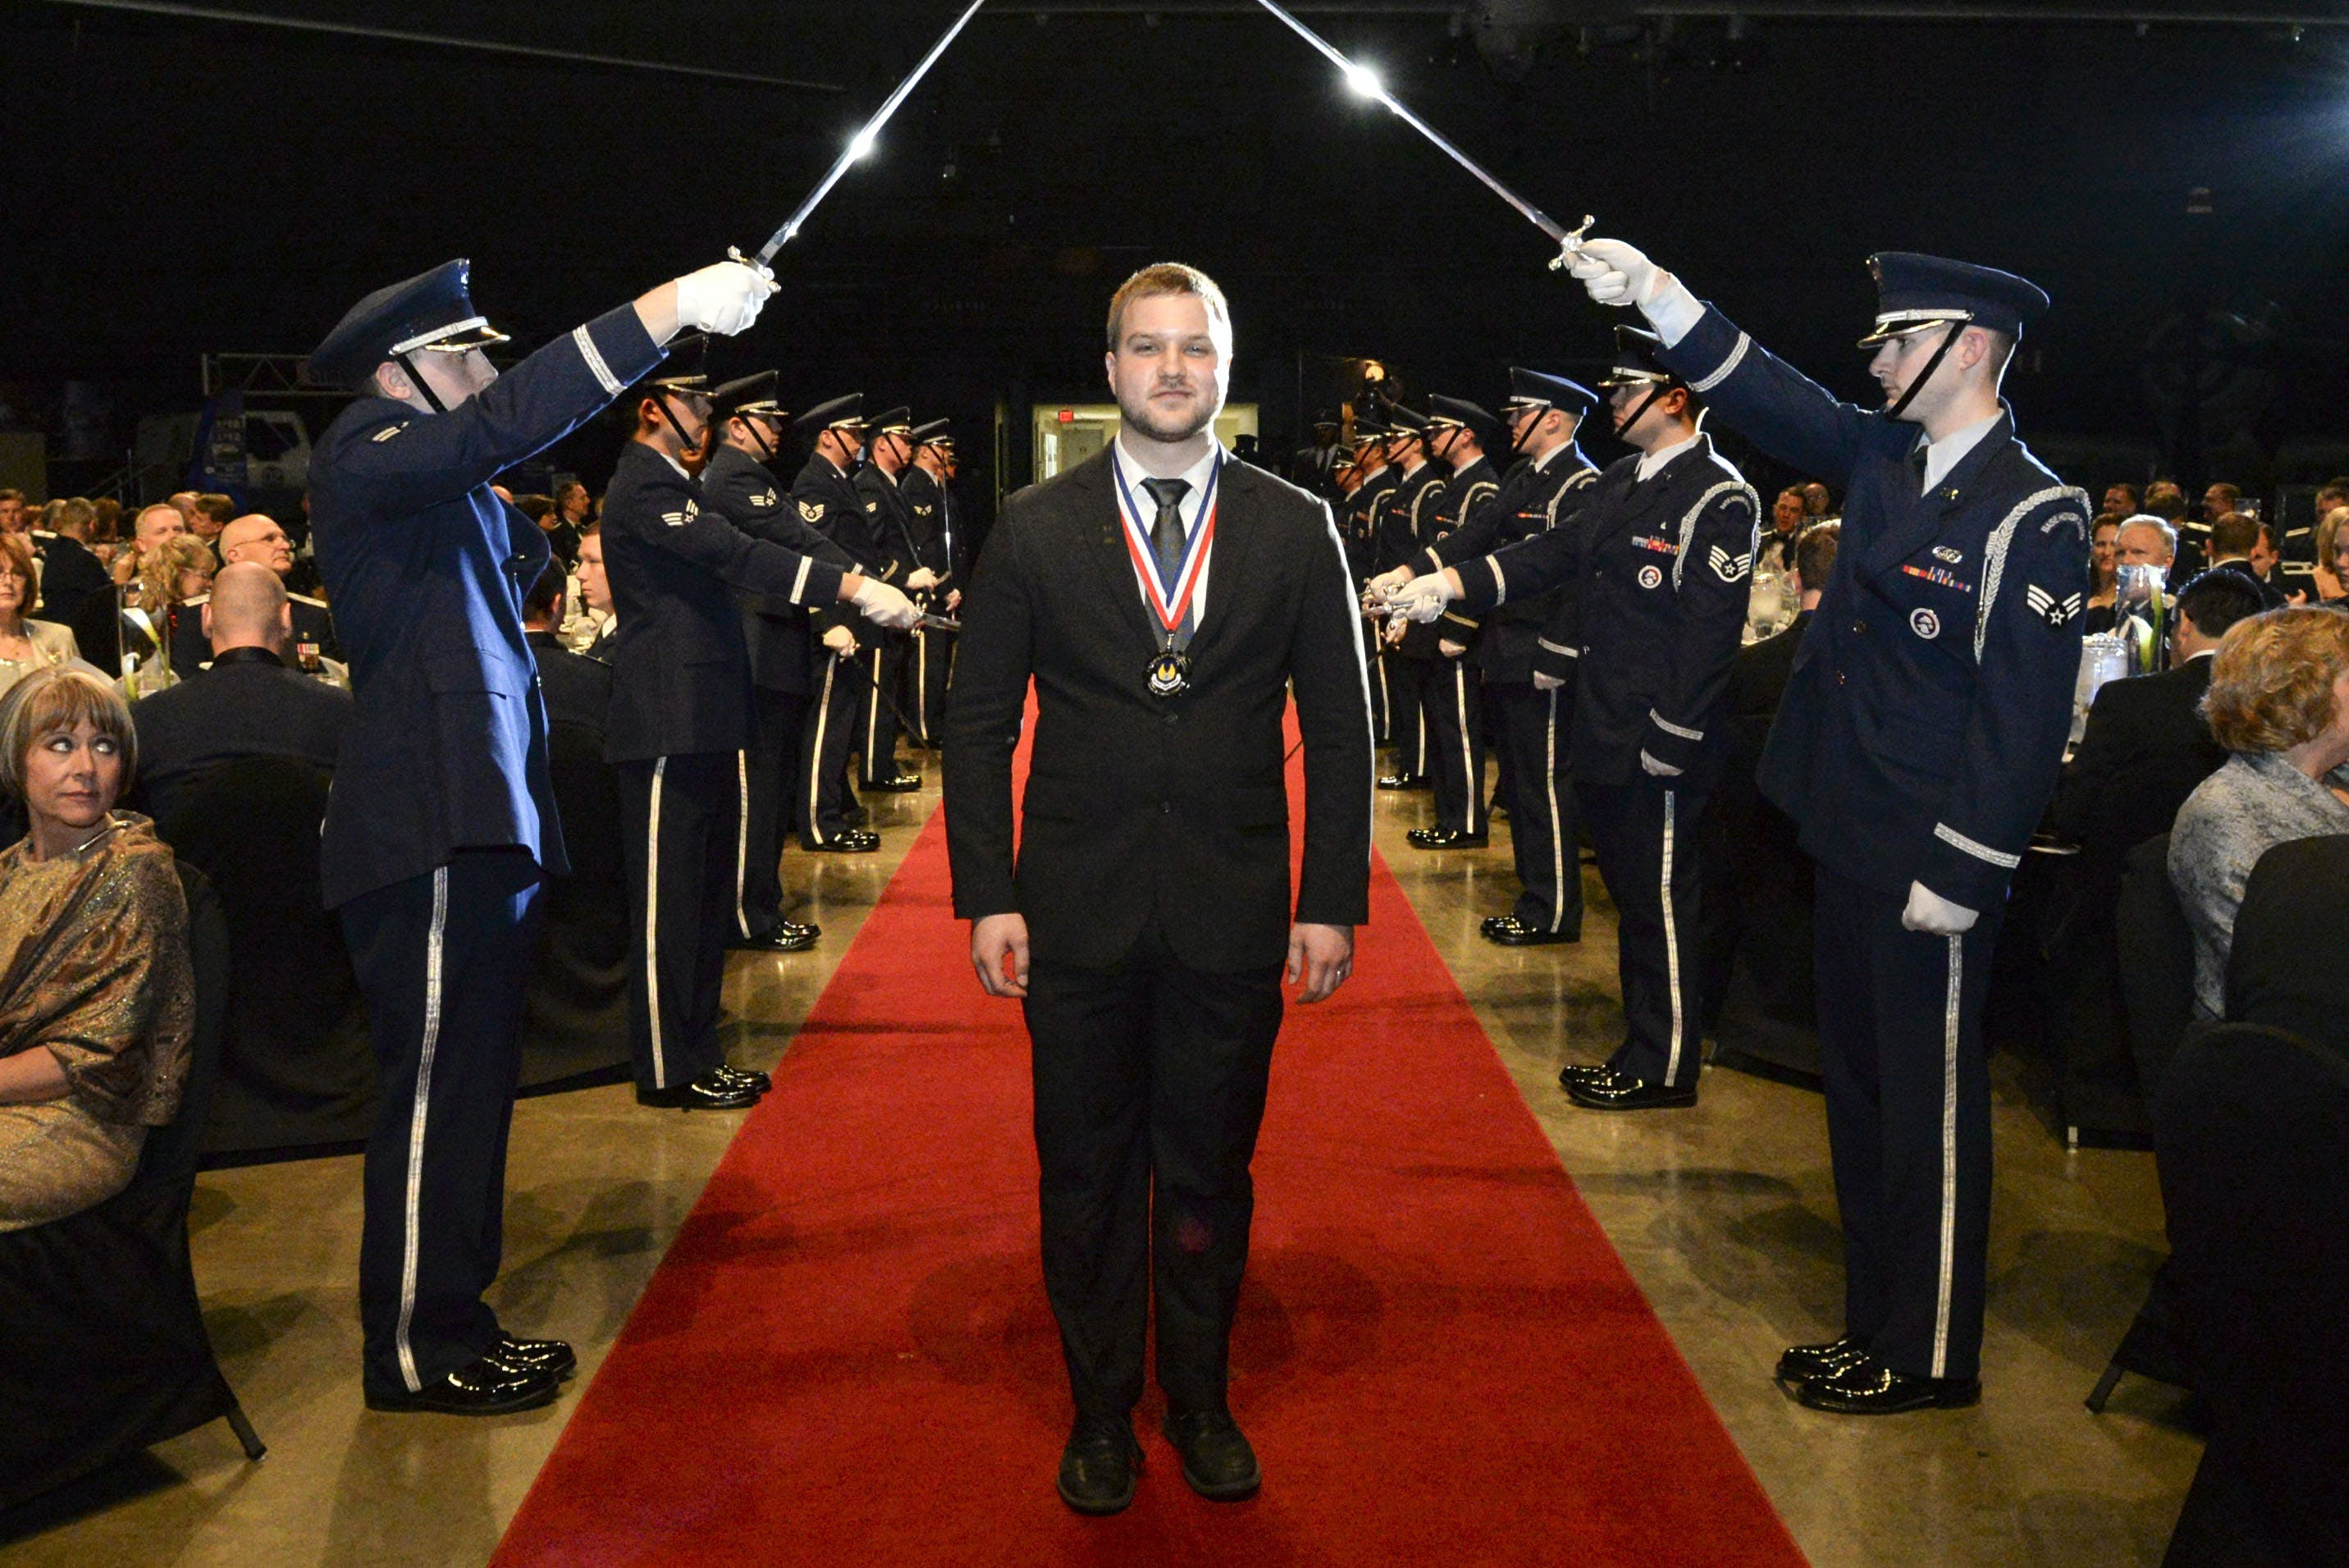 Ty Mick, wearing a medal featuring the AFMC logo, walking on a red carpet between Airmen holding swords at the 2014 AFMC Annual Excellents Awards.